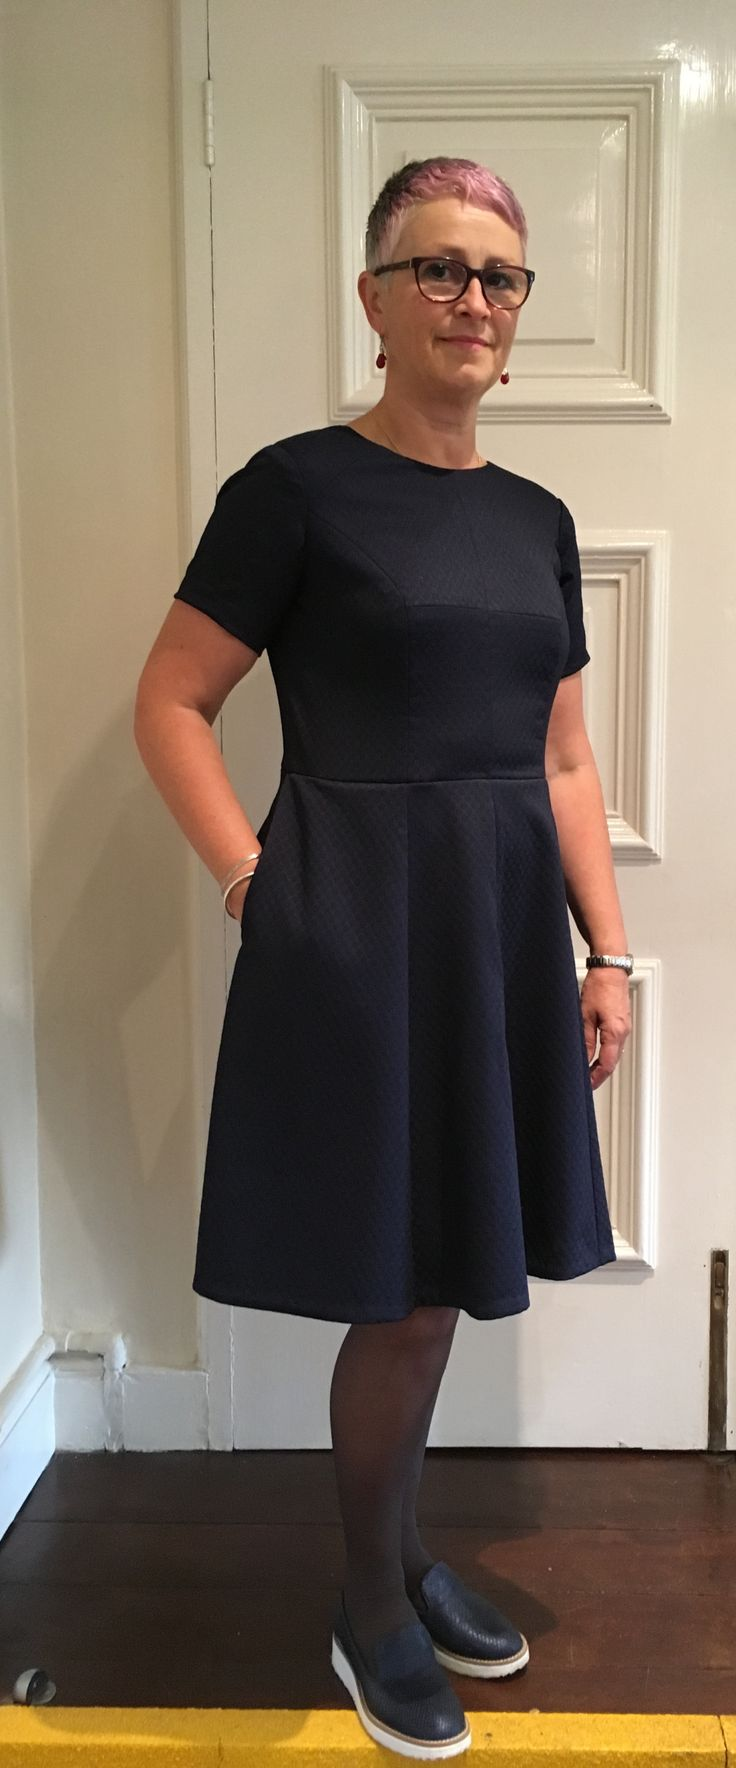 Susan Young Sewing review of the Karri dress